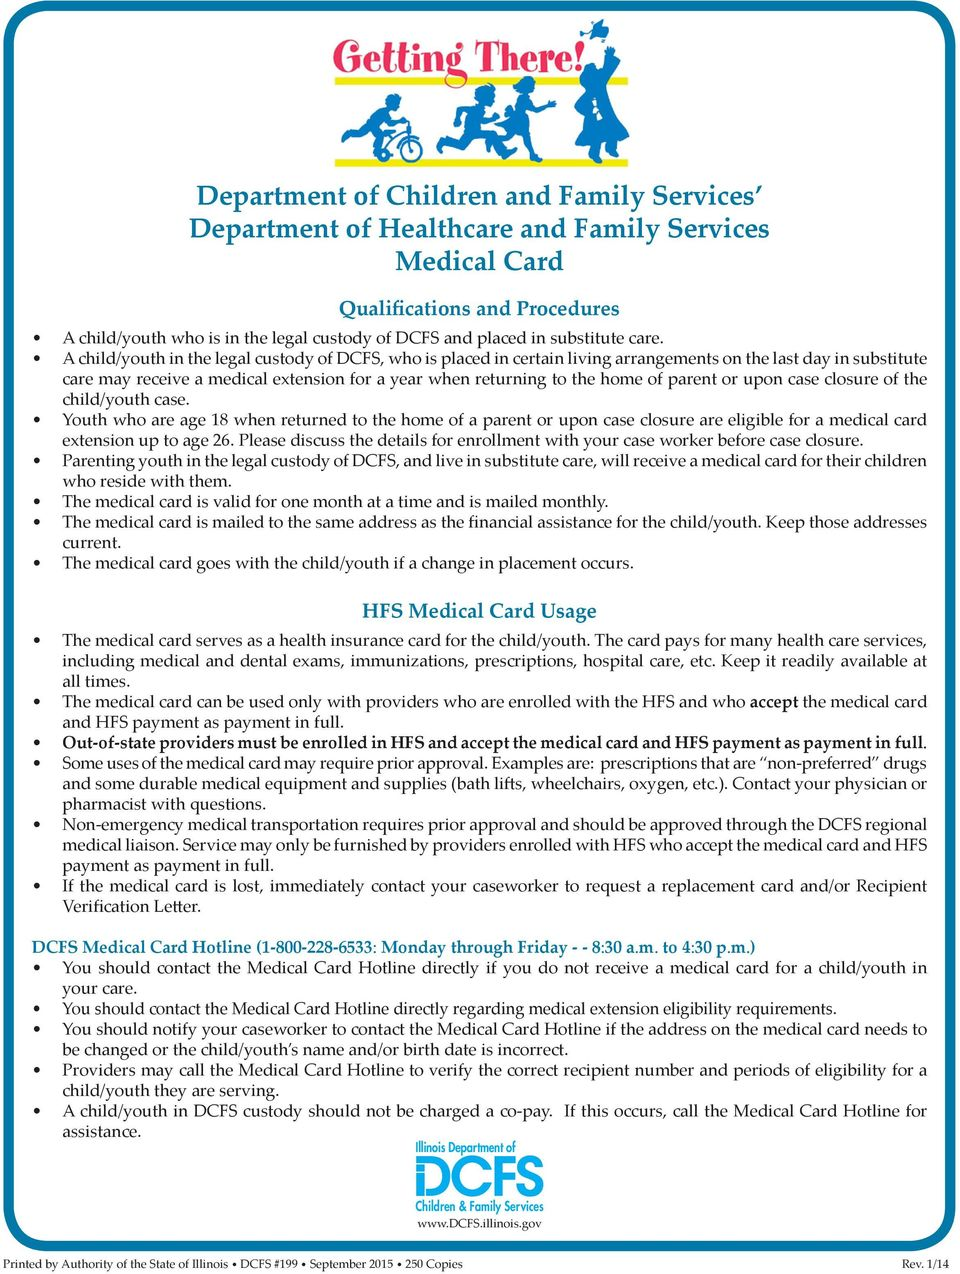 A child/youth in the legal custody of DCFS, who is placed in certain living arrangements on the last day in substitute care may receive a medical extension for a year when returning to the home of